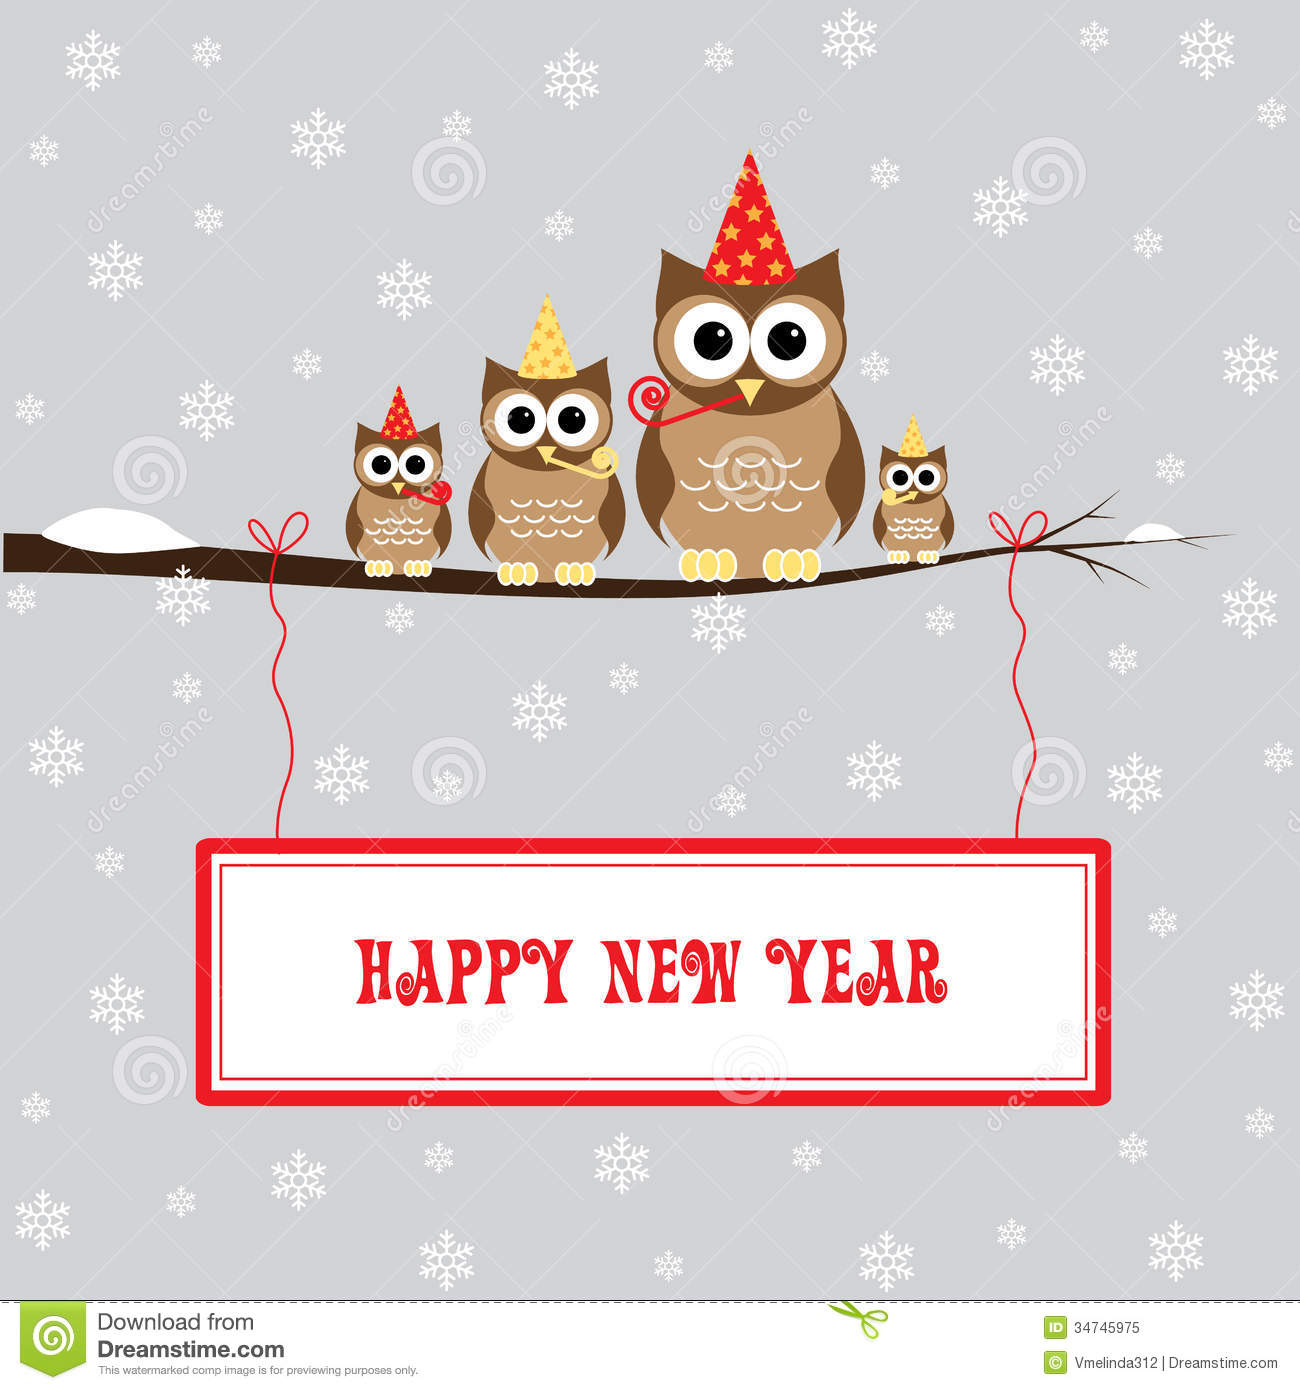 Happy New Year Royalty Free Stock Photo   Image  34745975